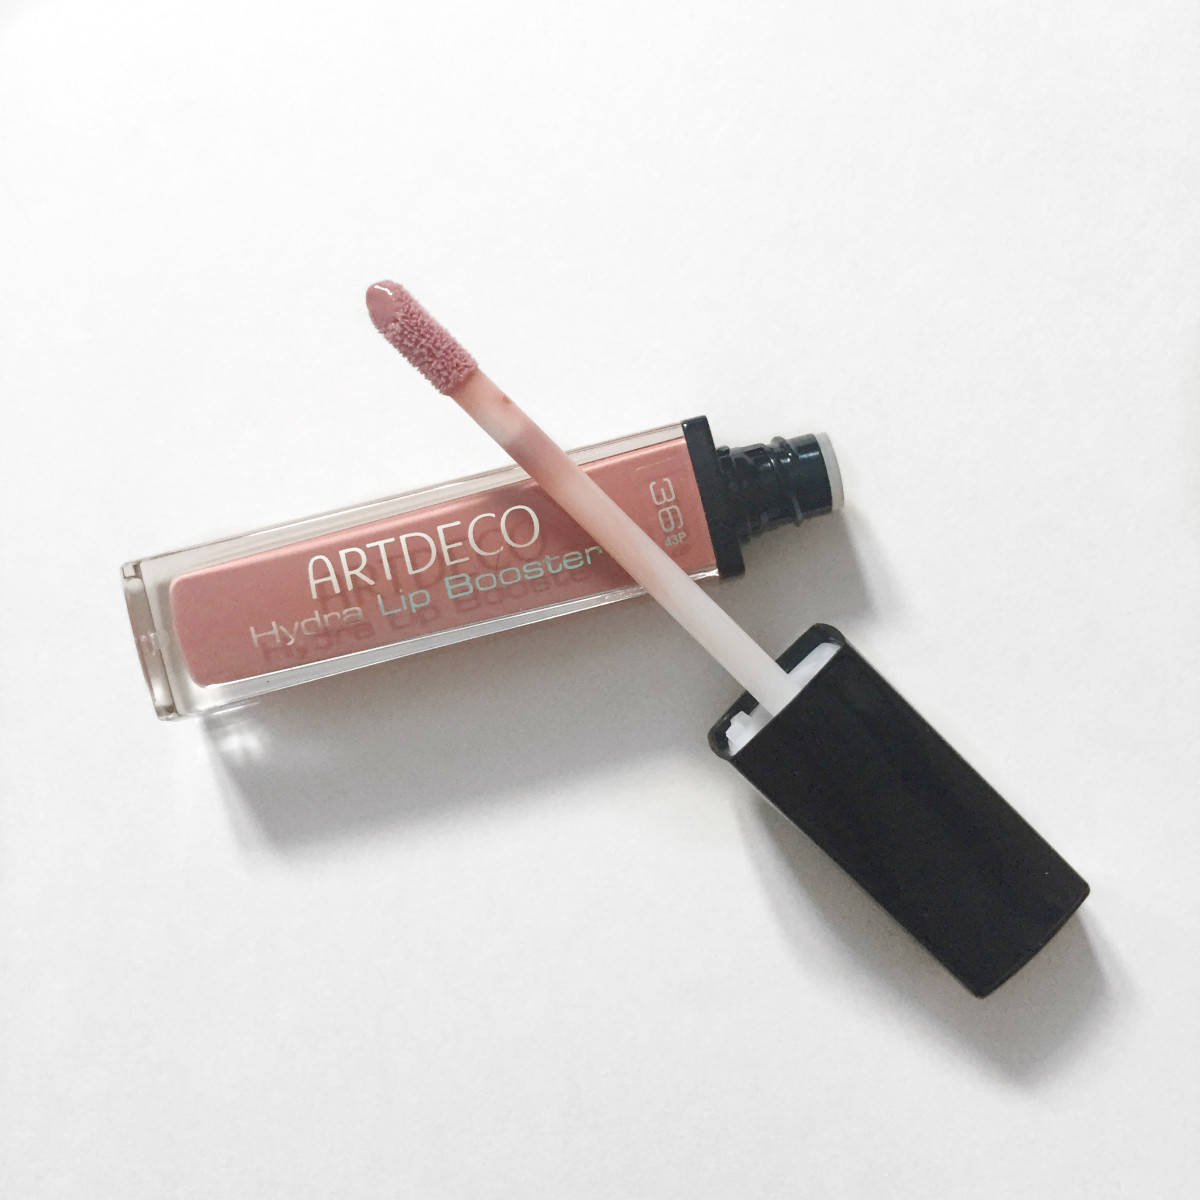 ARTDECO Hydra Lip Booster in Translucent Rosewood